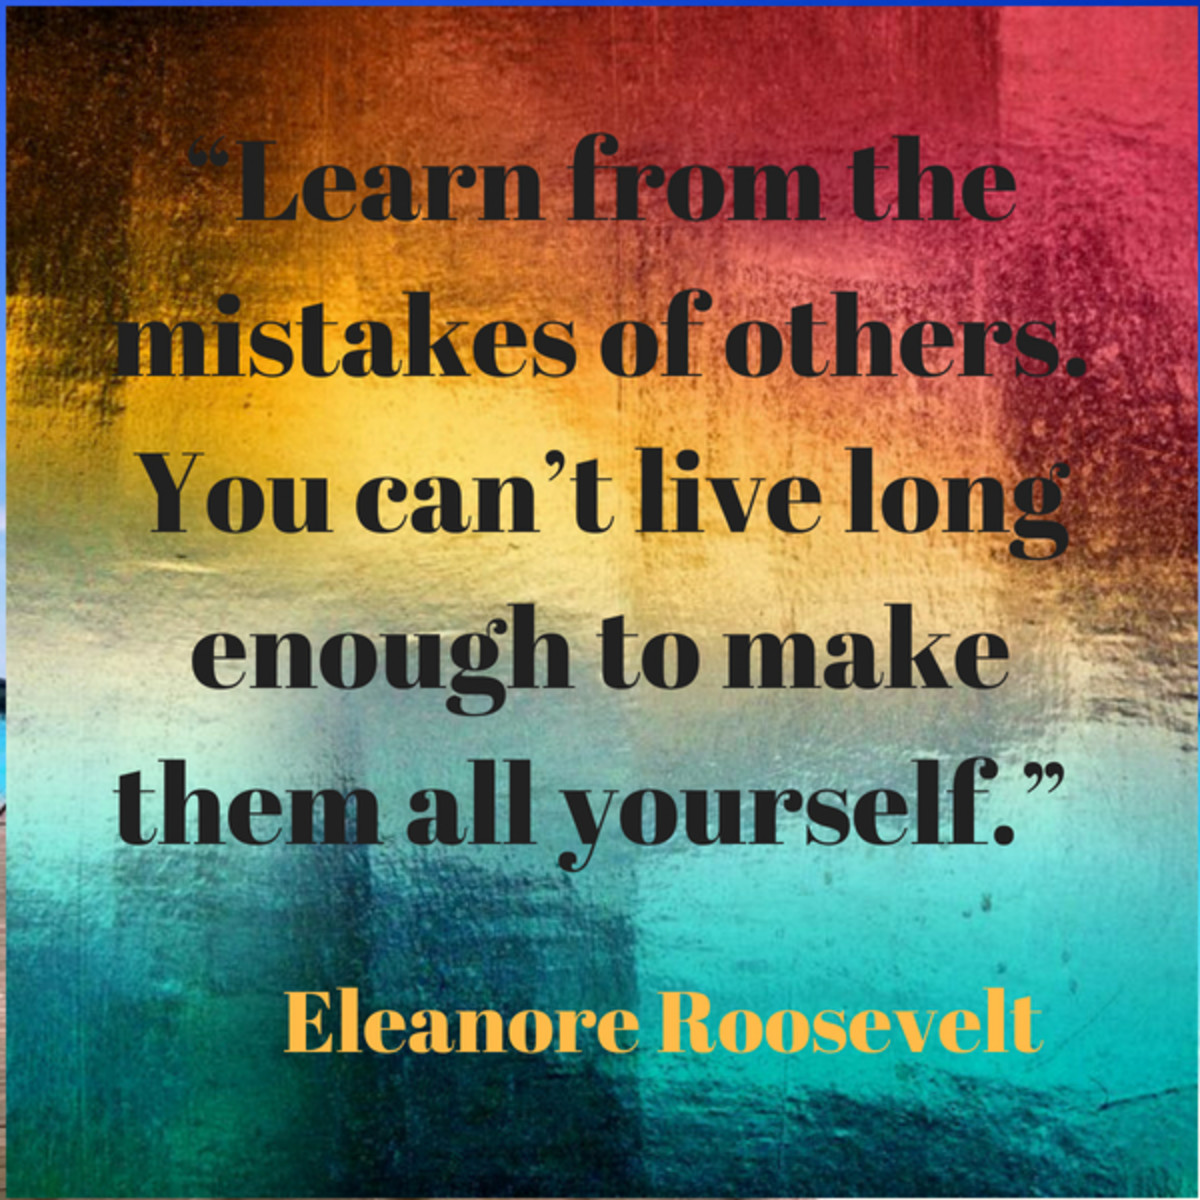 inspirational-quotes-about-making-mistakes-and-moving-past-them